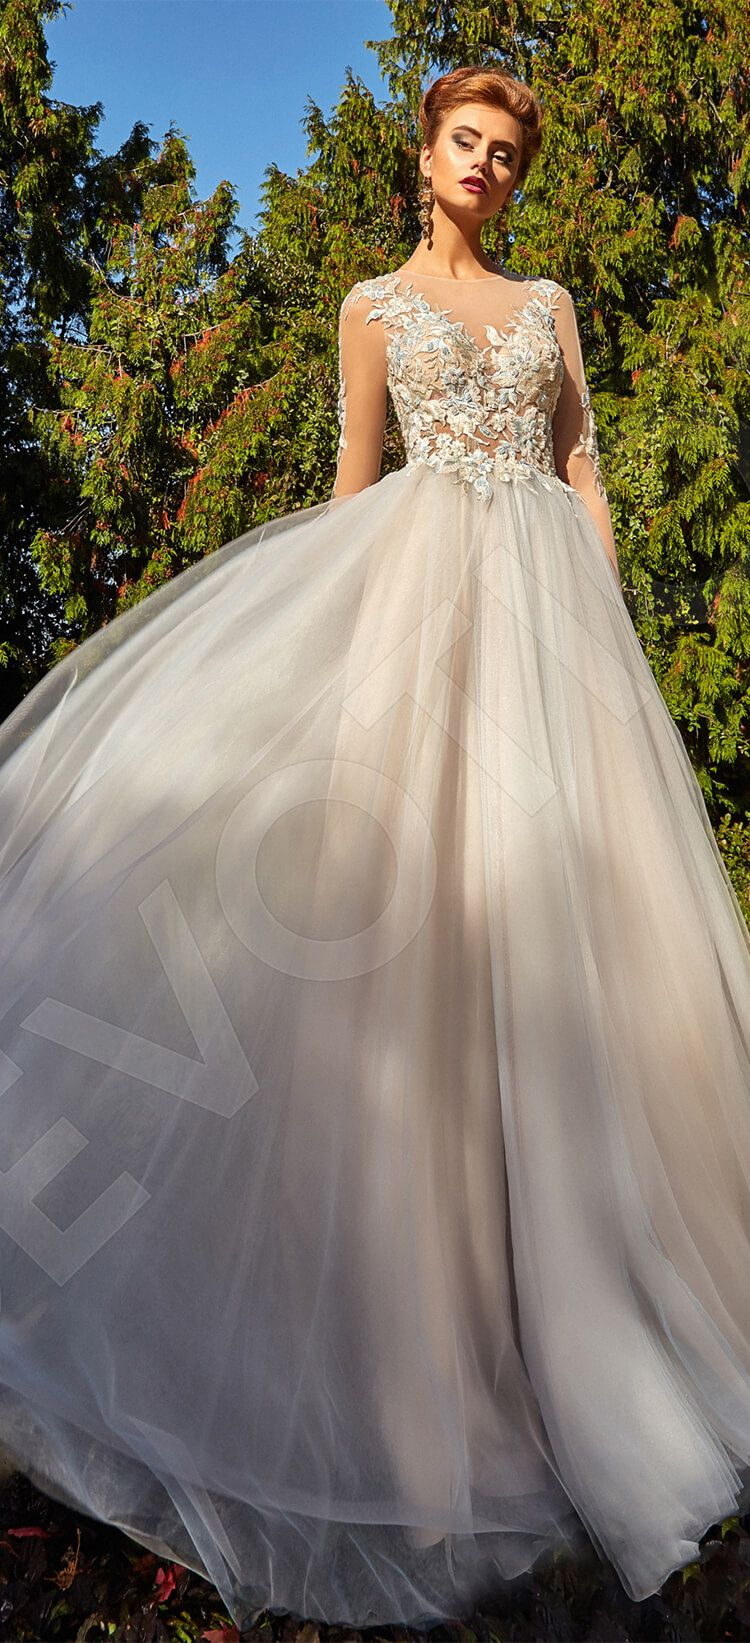 Acut cream wedding dress is made out of satin tulle and spanish